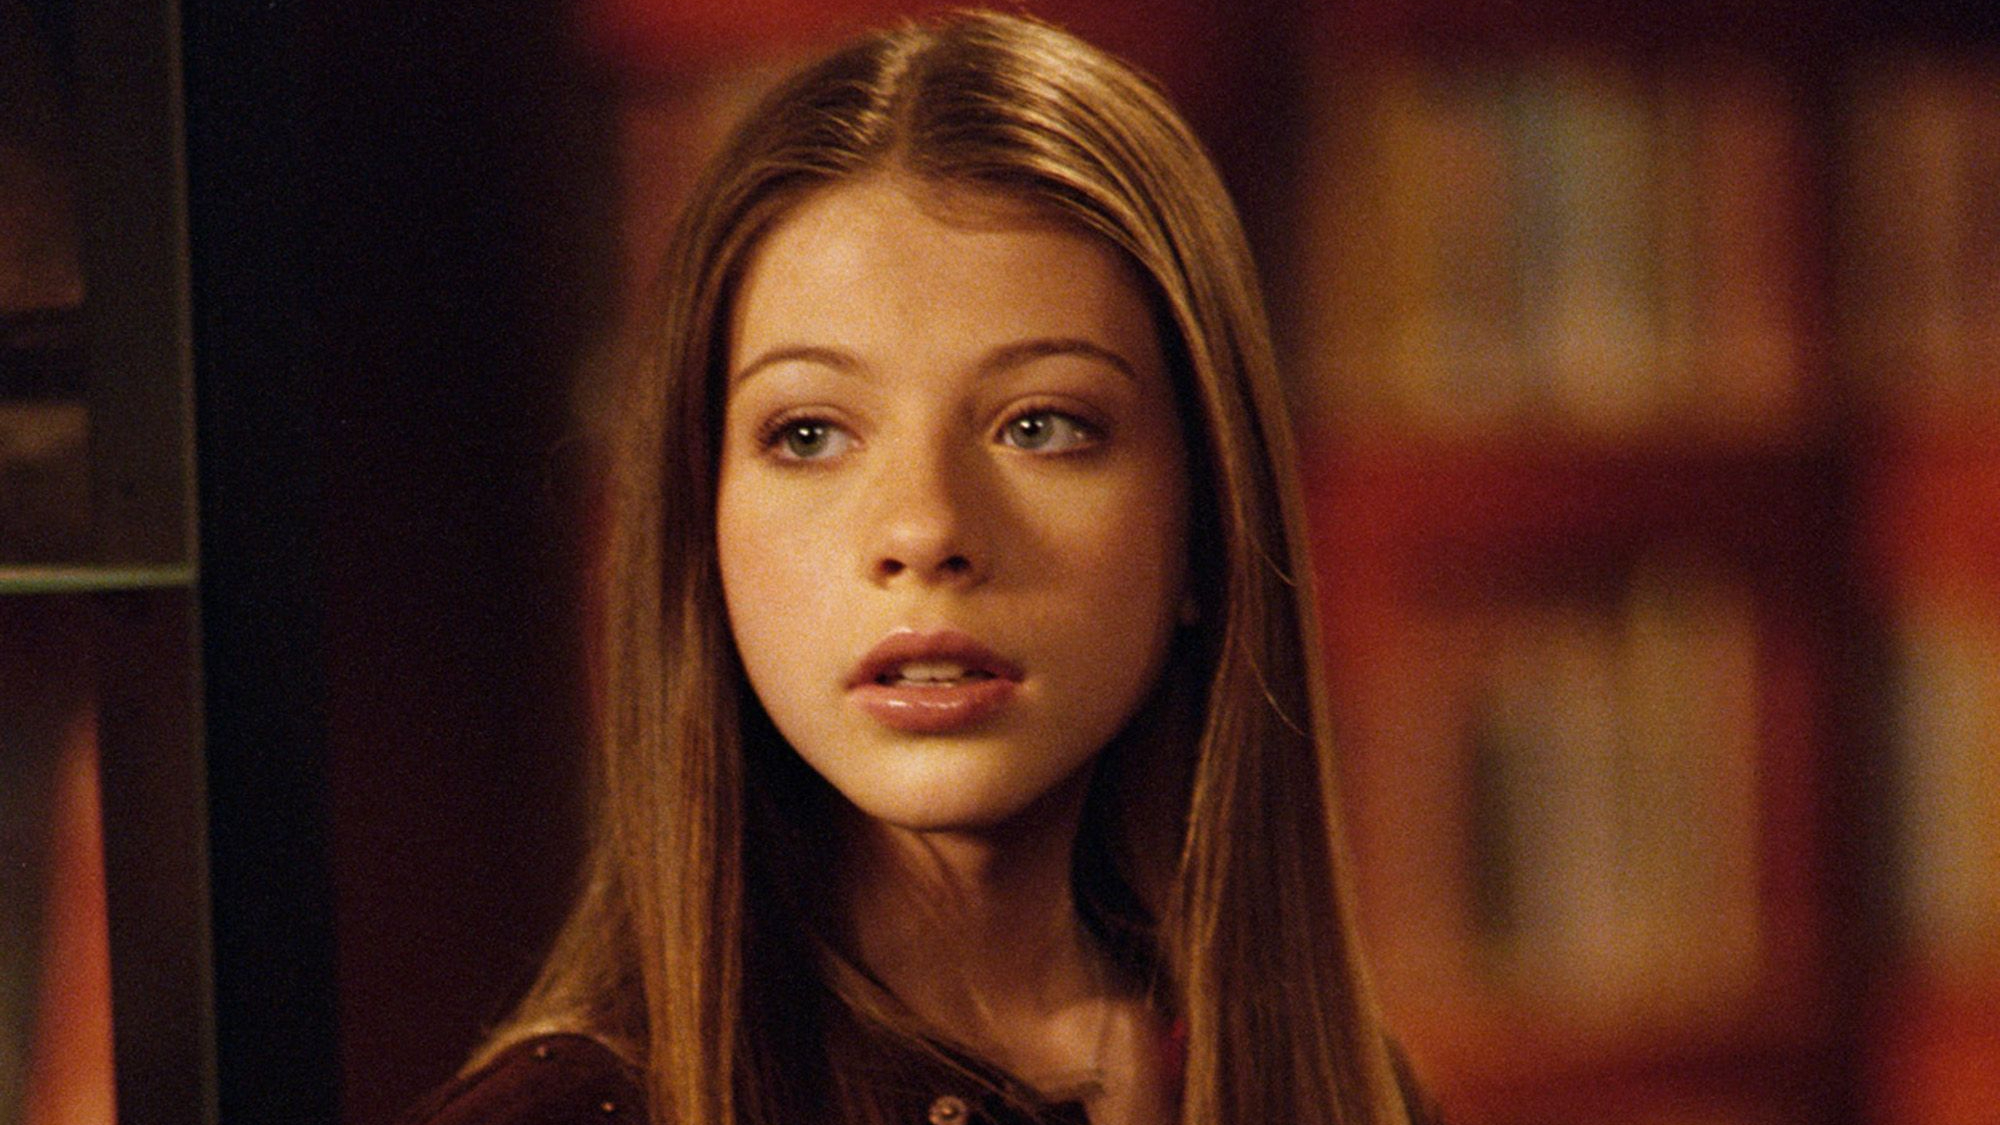 Buffy's Michelle Trachtenberg Backs Up Abuse Allegations Against Joss Whedon